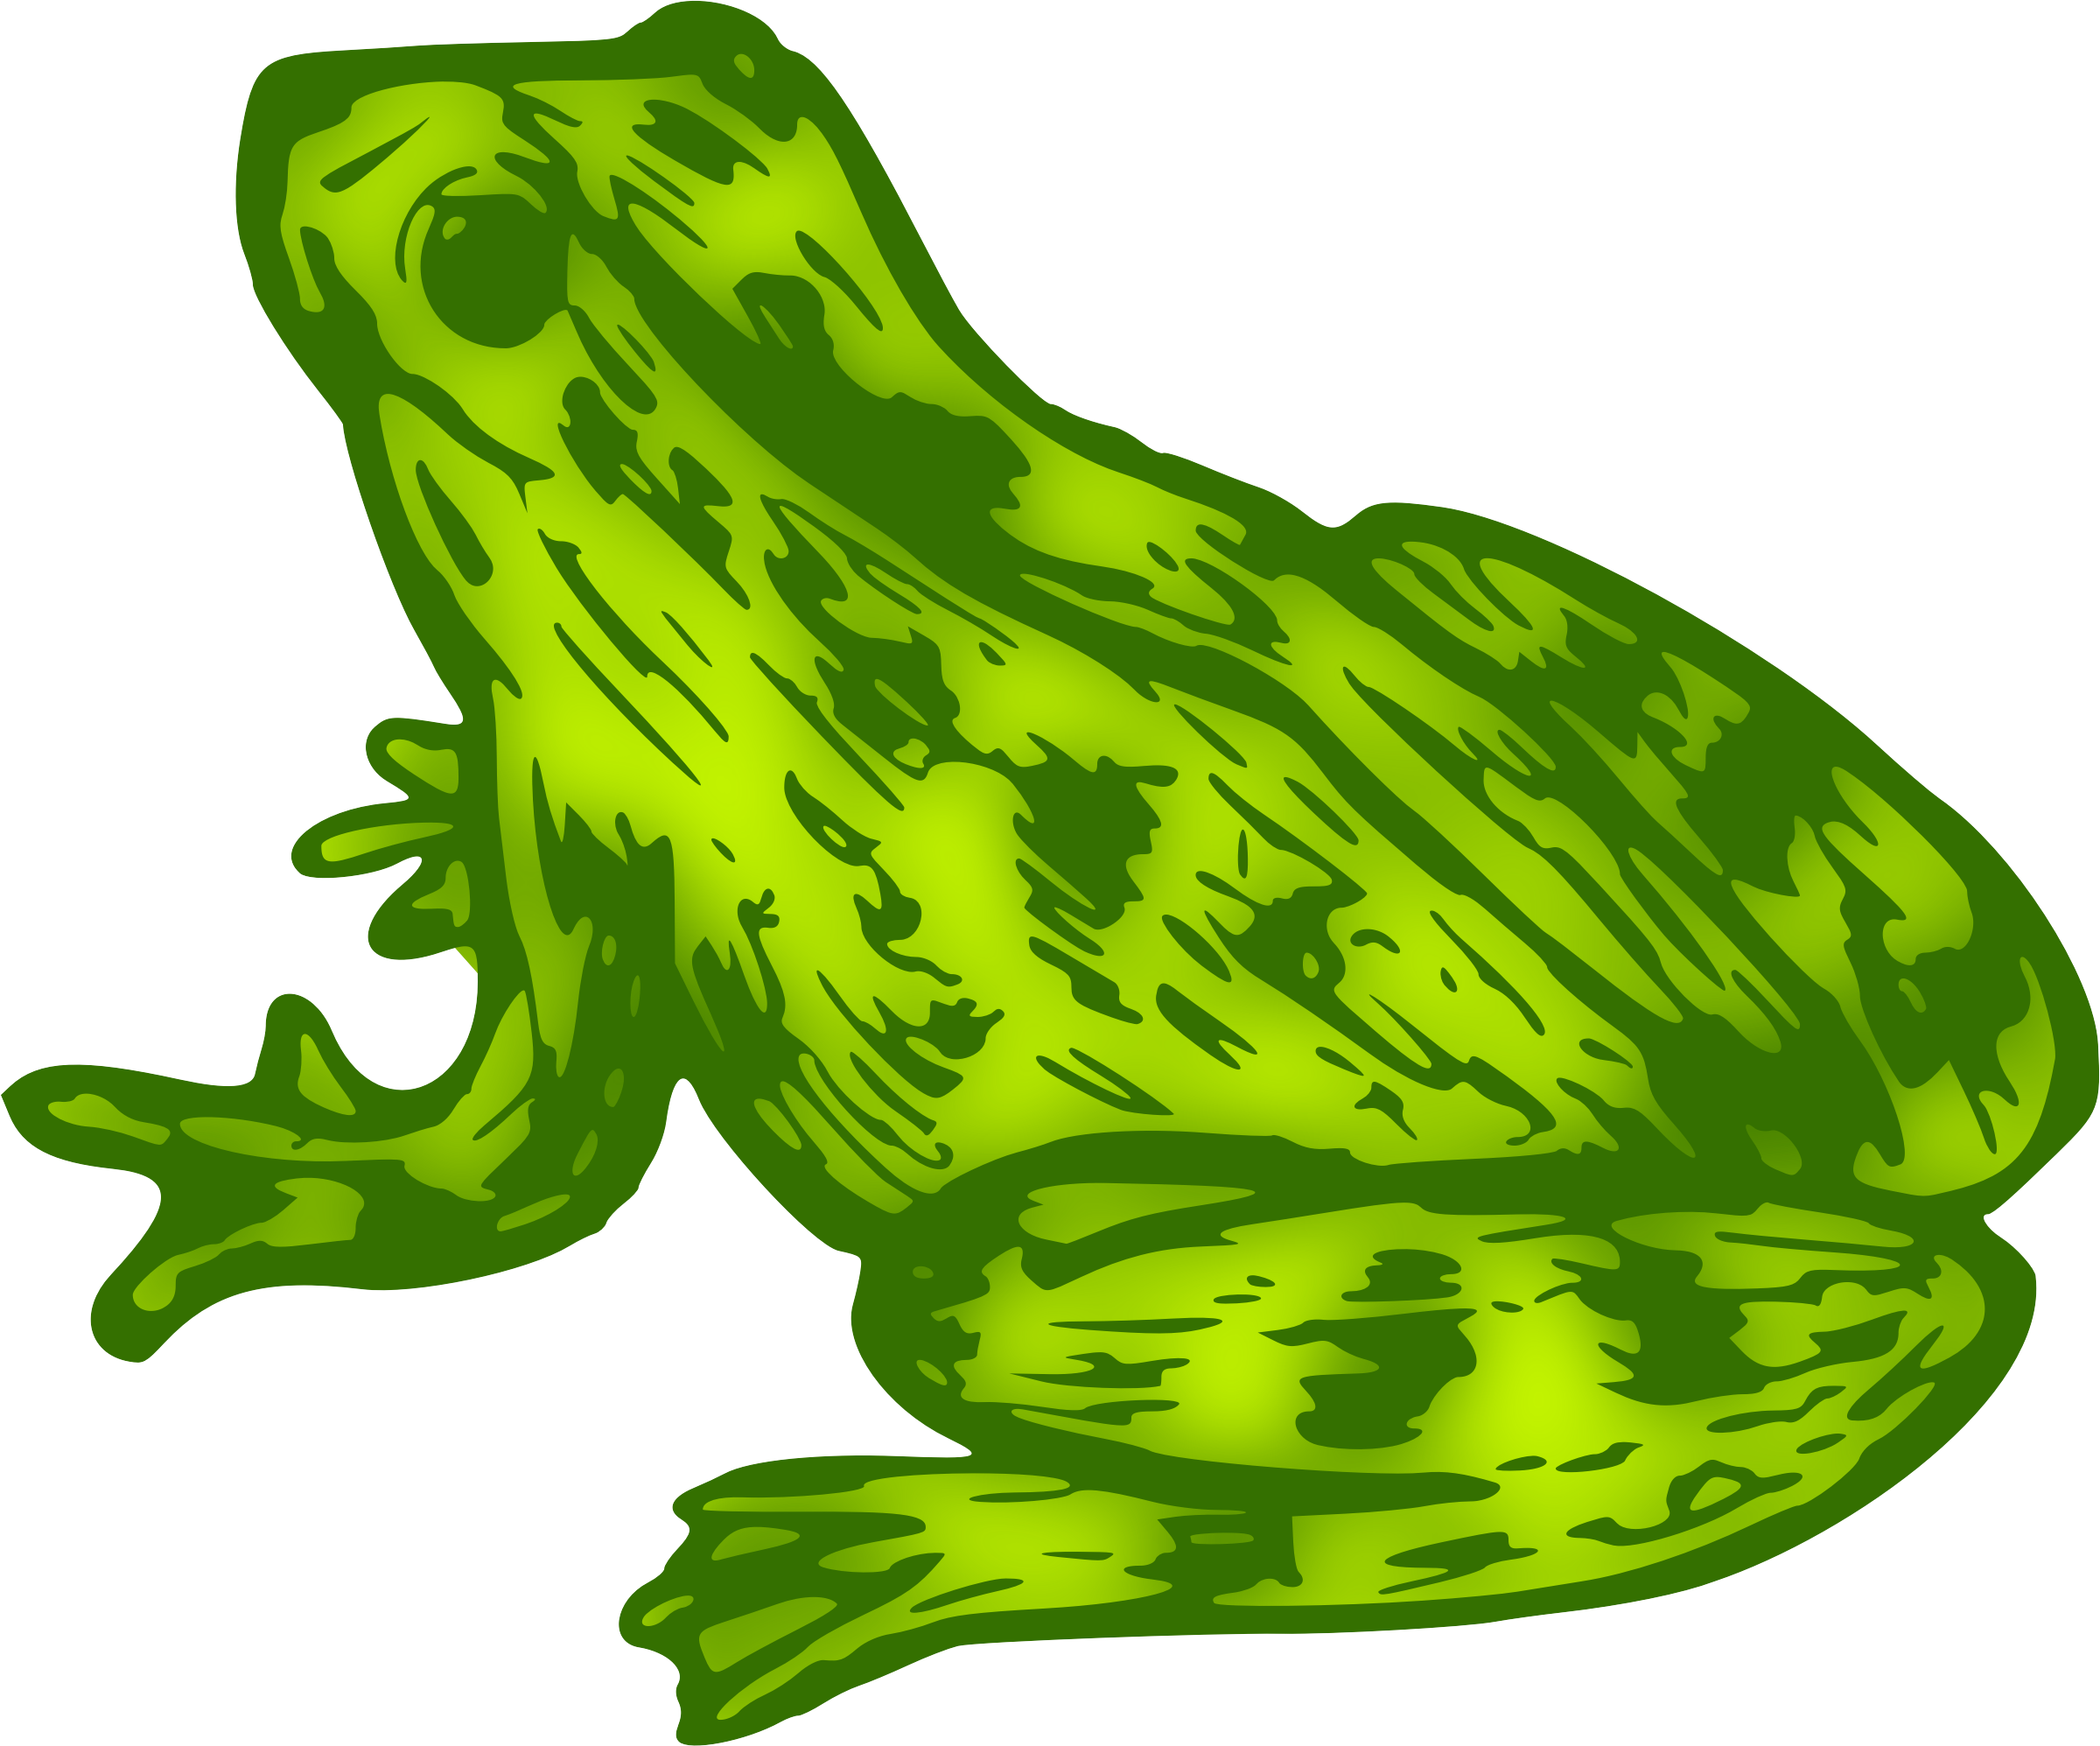 Toad clipart colour green. Frog big image png